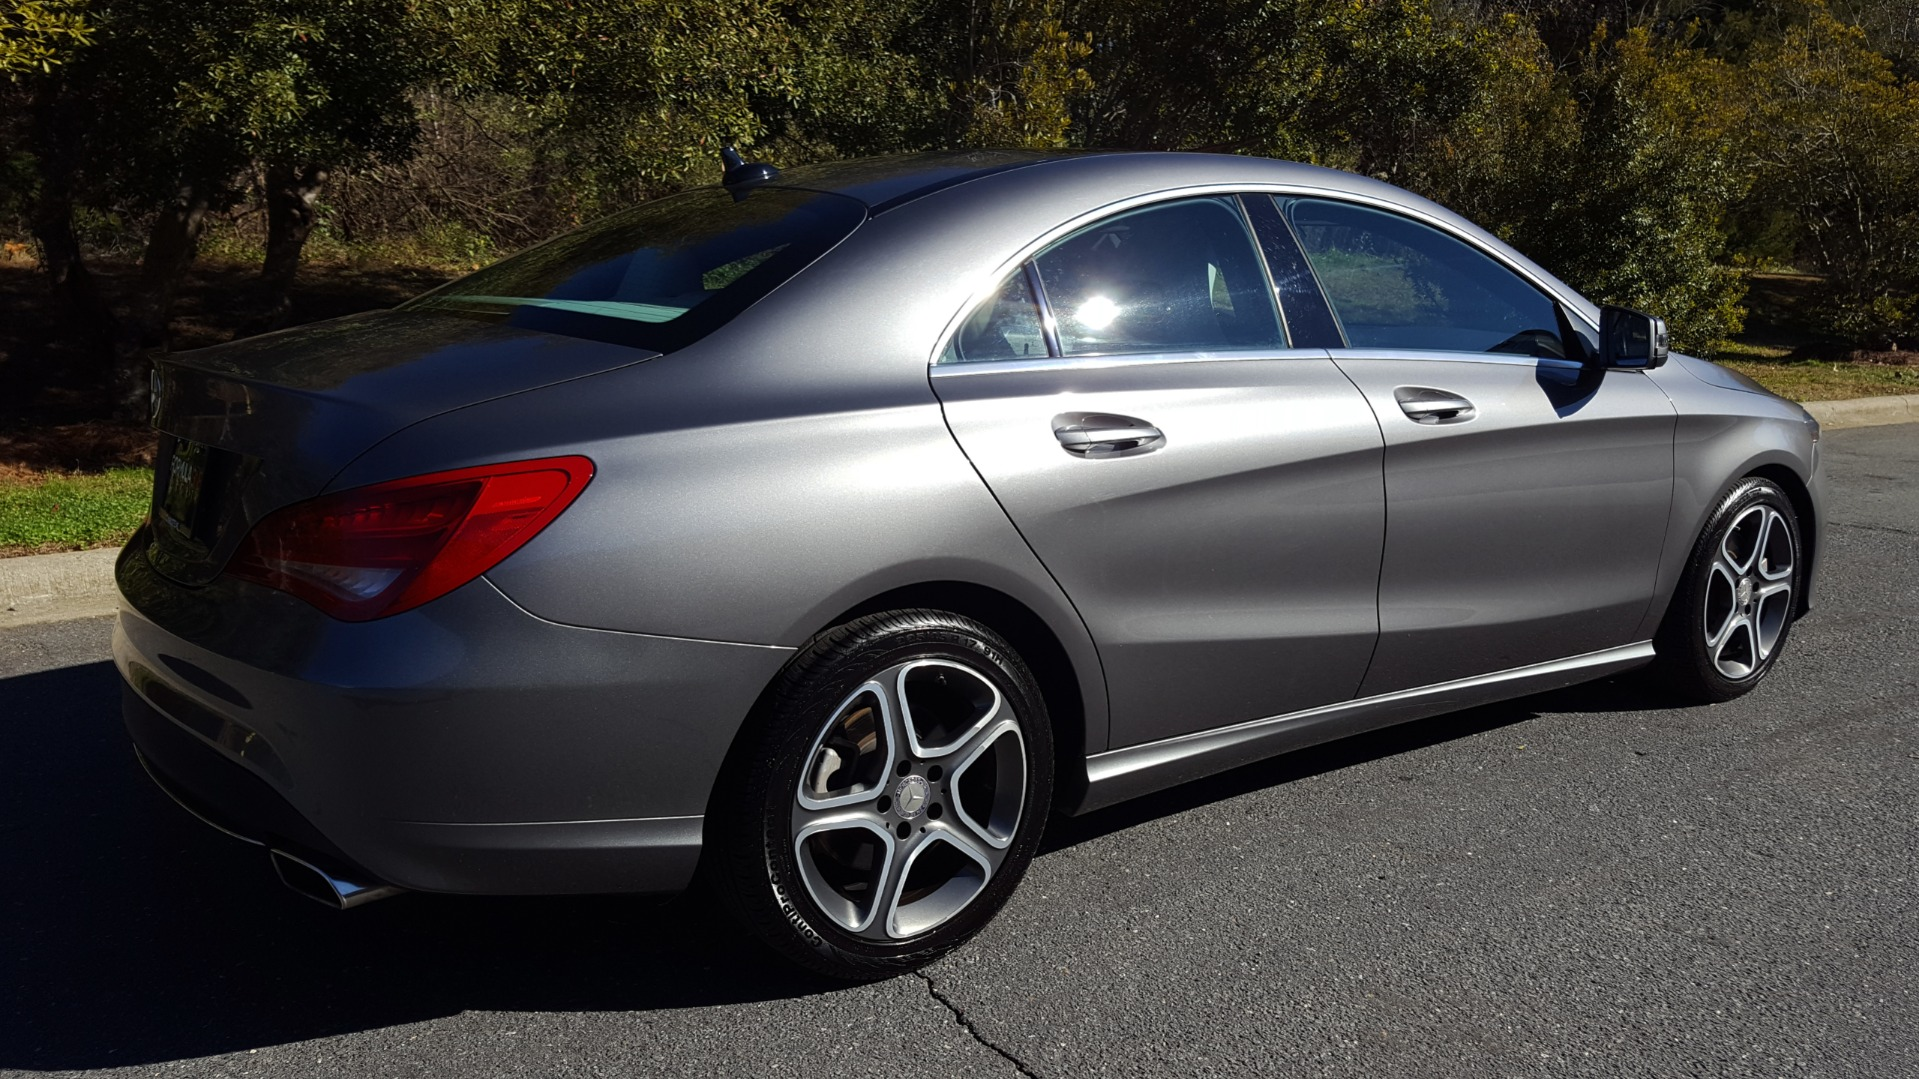 Used 2014 Mercedes-Benz CLA-CLASS CLA 250 / NAV / PANO-ROOF / BLIND SPOT ASSIST / XENON HEADLIGHTS for sale $19,995 at Formula Imports in Charlotte NC 28227 8